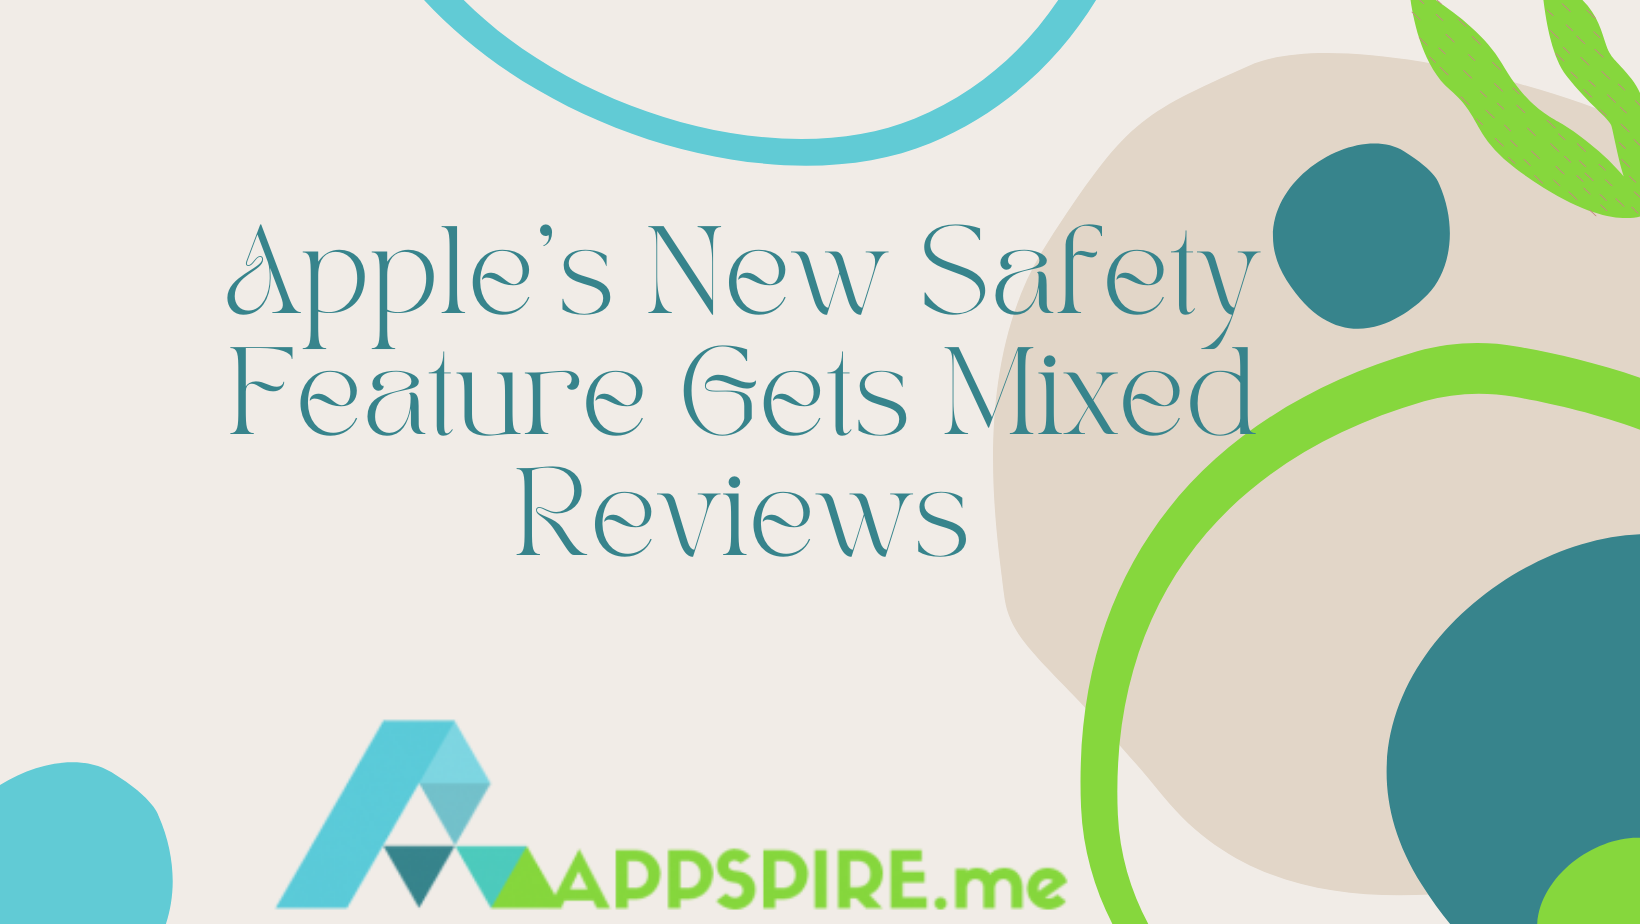 Apple Gets Mixed Reactions Over New Safety Feature